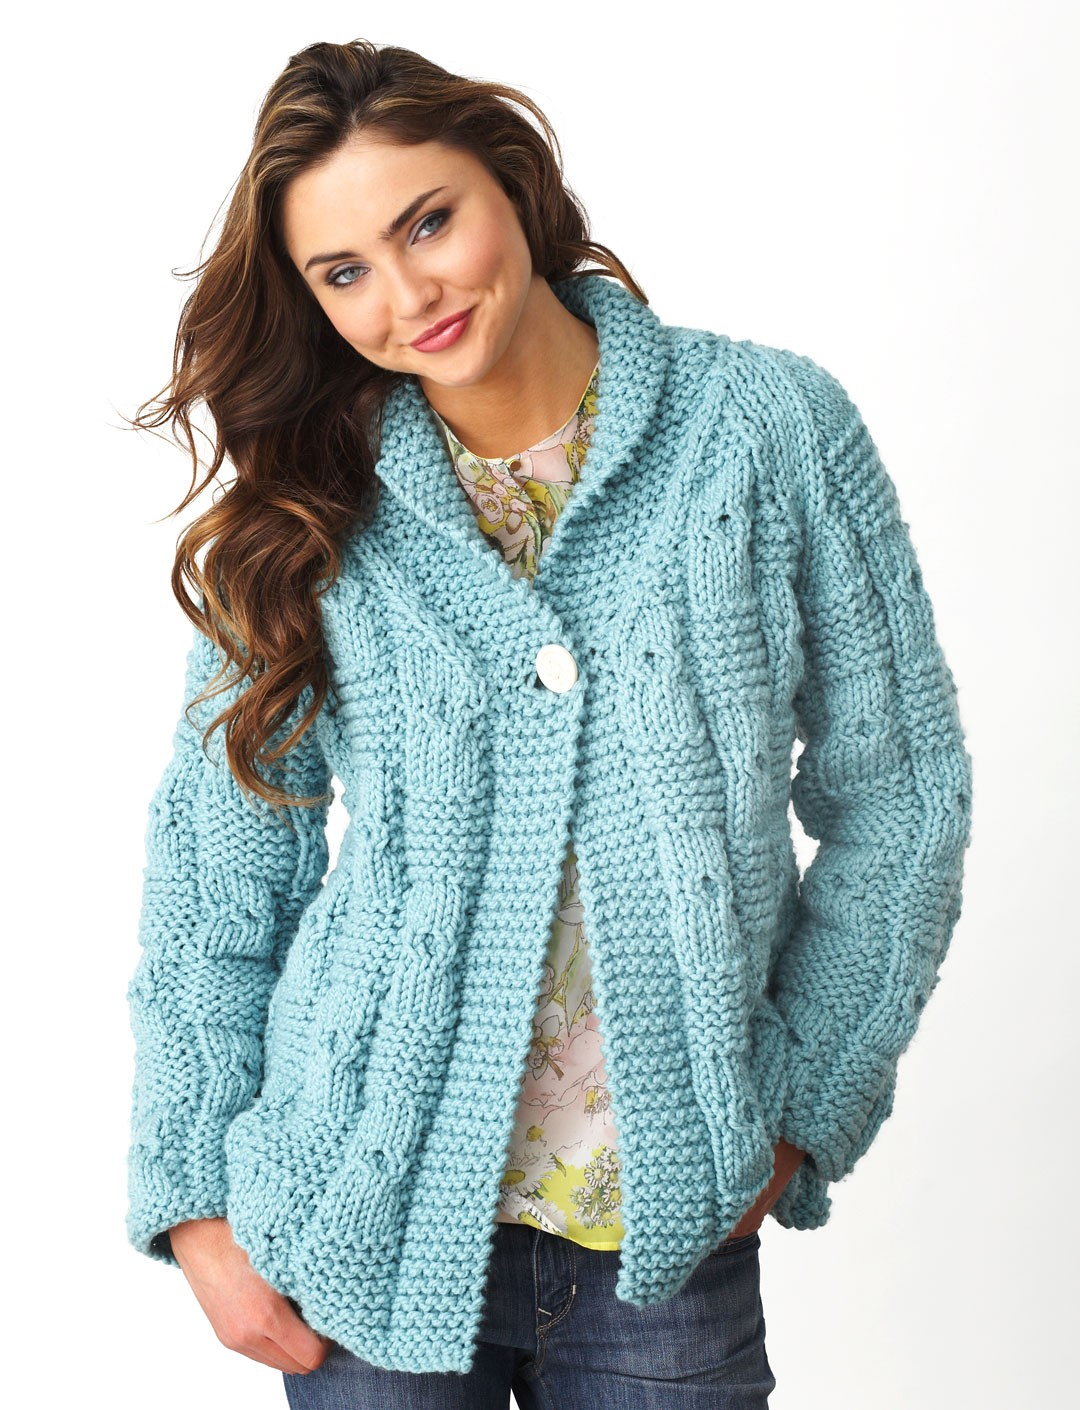 Shop a great selection of Cardigan Sweaters for Women at Nordstrom Rack. Find designer Cardigan Sweaters for Women up to 70% off and get free shipping on orders over $ Quick Look JOSEPH A - Solid Double Knit Cardigan. JOSEPH A. Solid Double Knit Cardigan. $